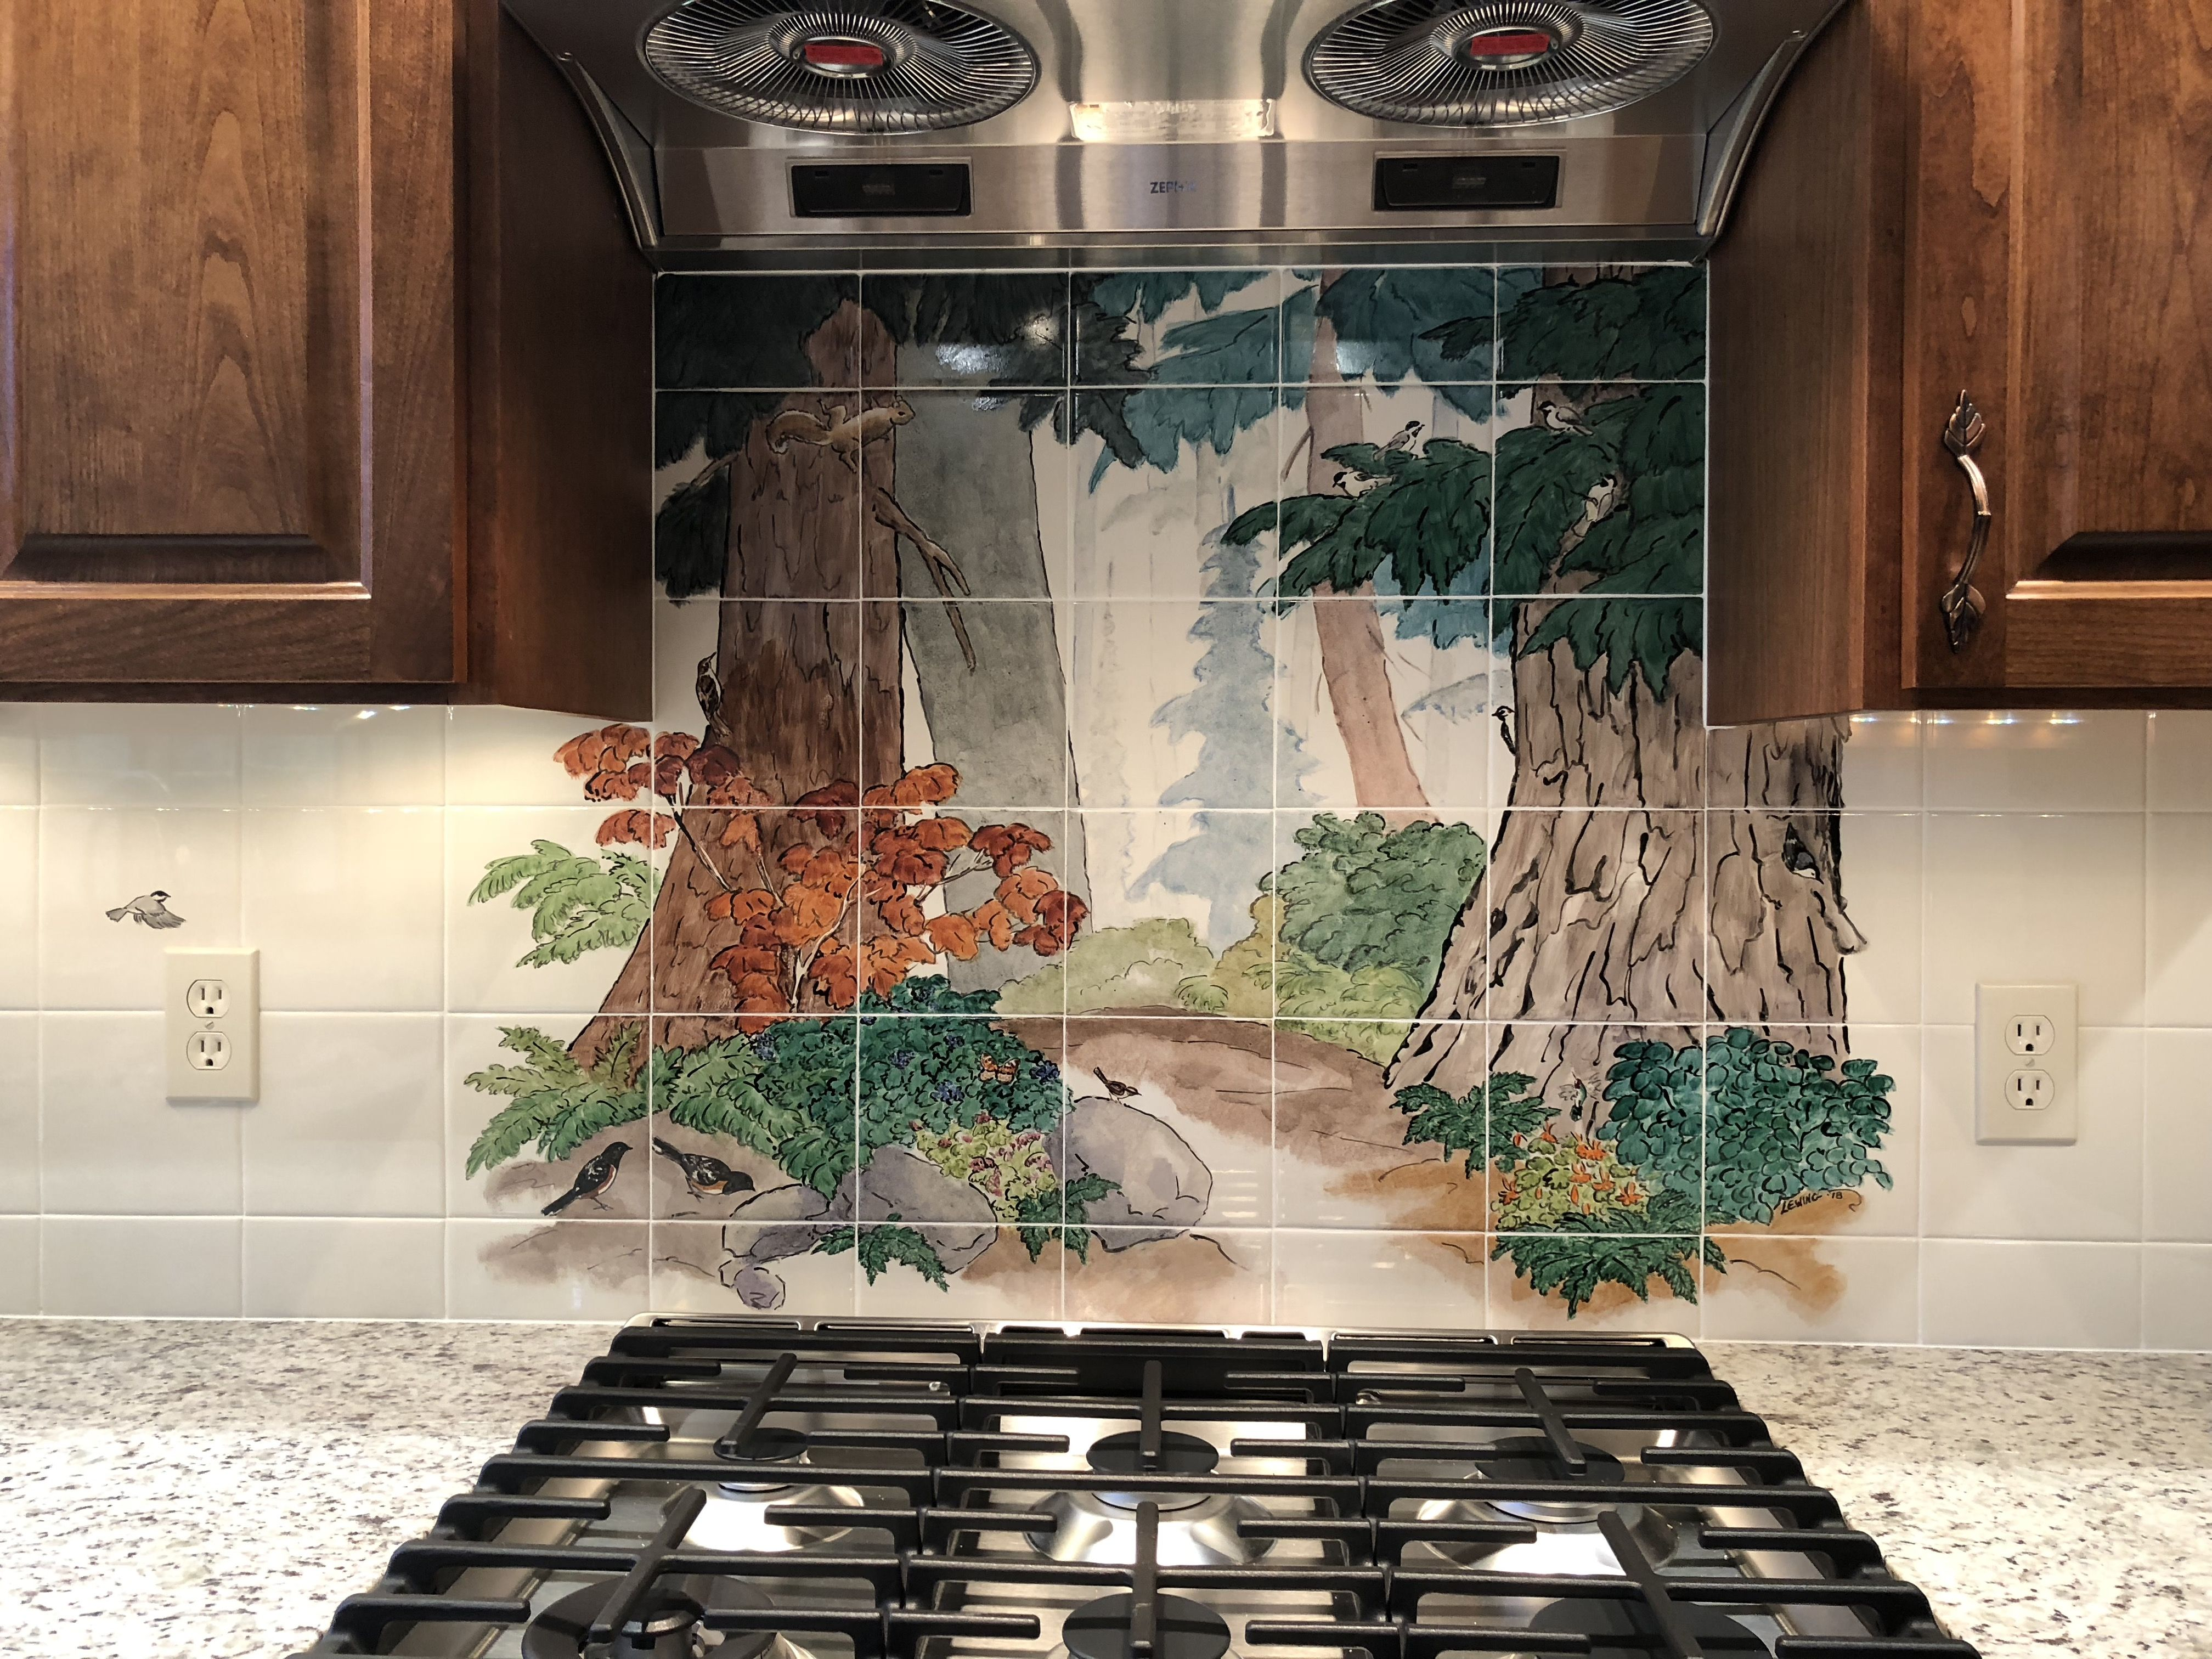 A Path Into A Forest In This Custom Tile Mural Makes The Kitchen